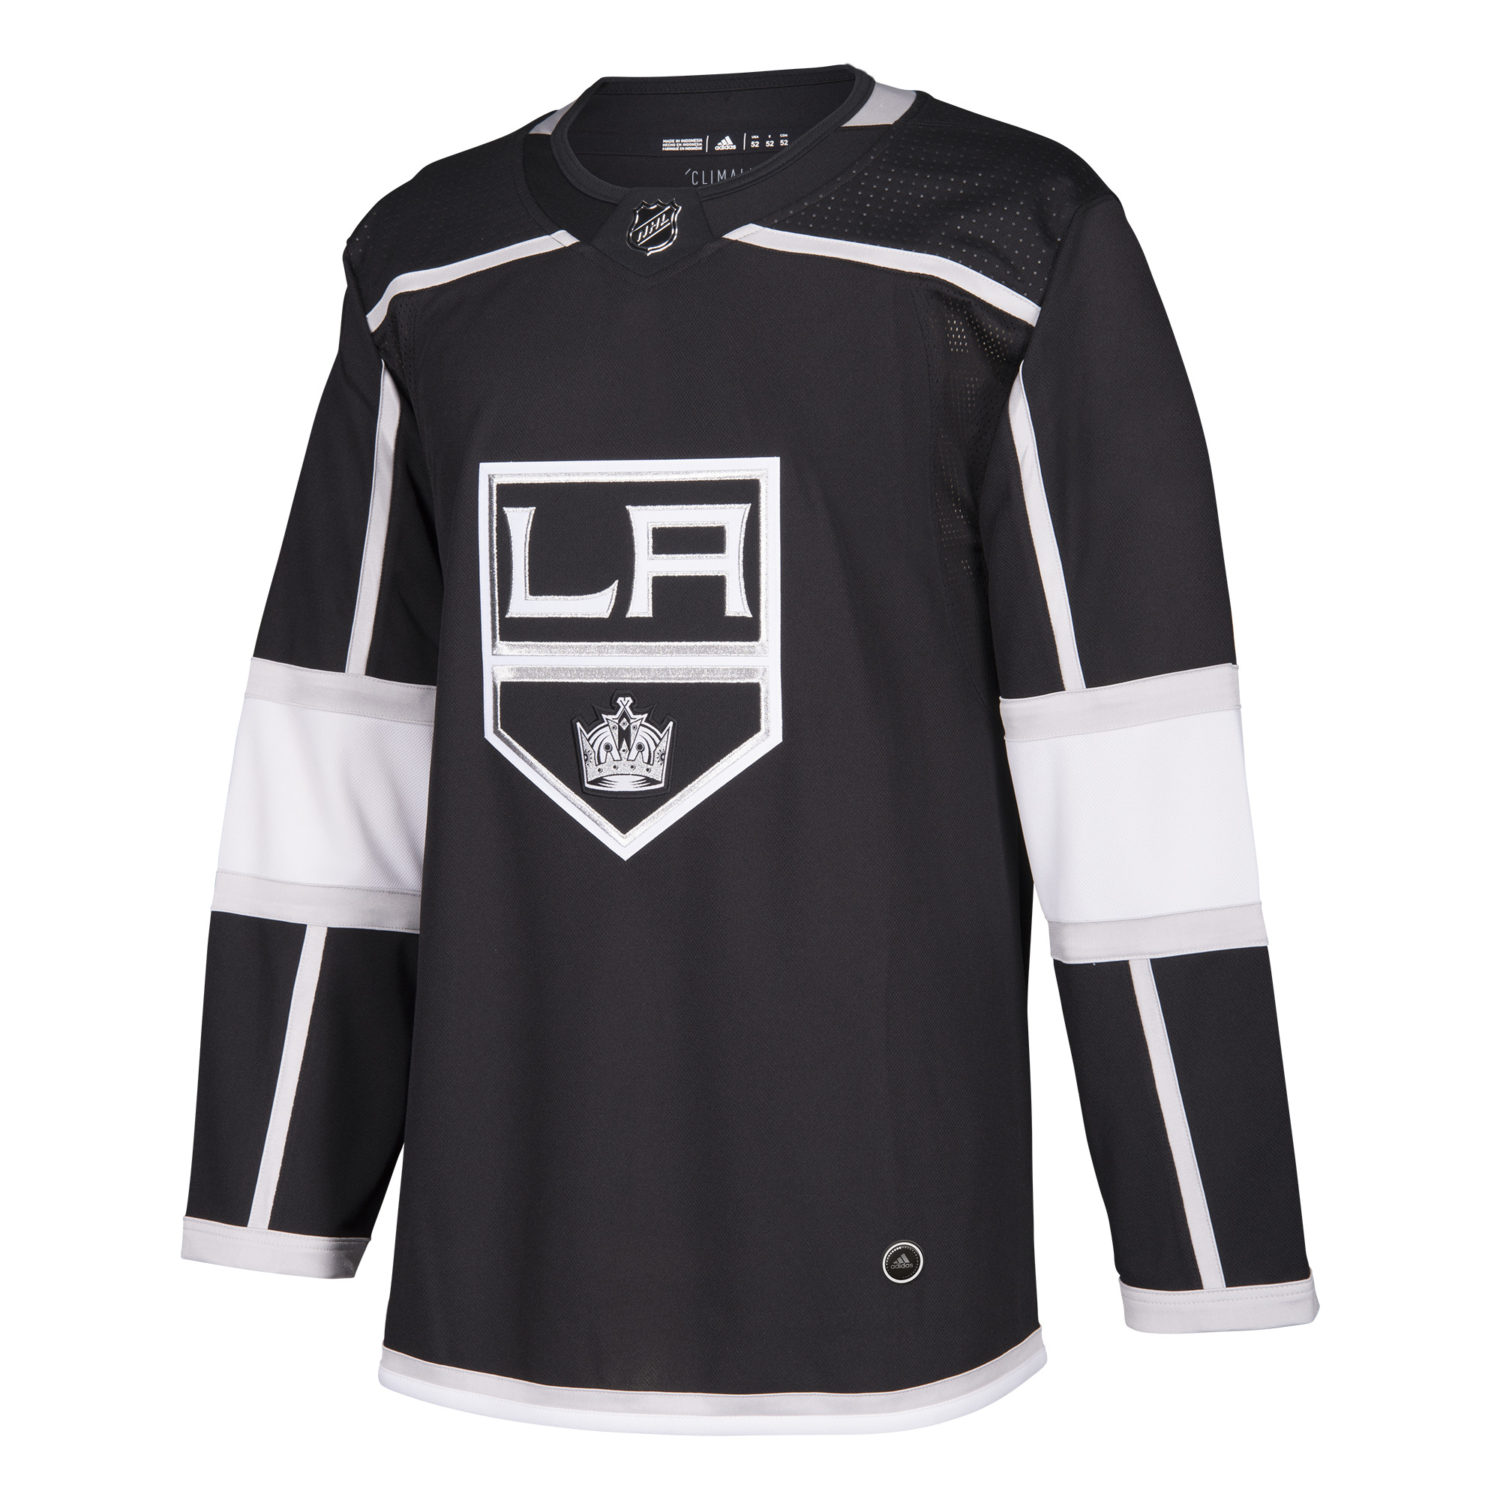 NHL Adidas jerseys revealed  minor changes for most teams b73abad92